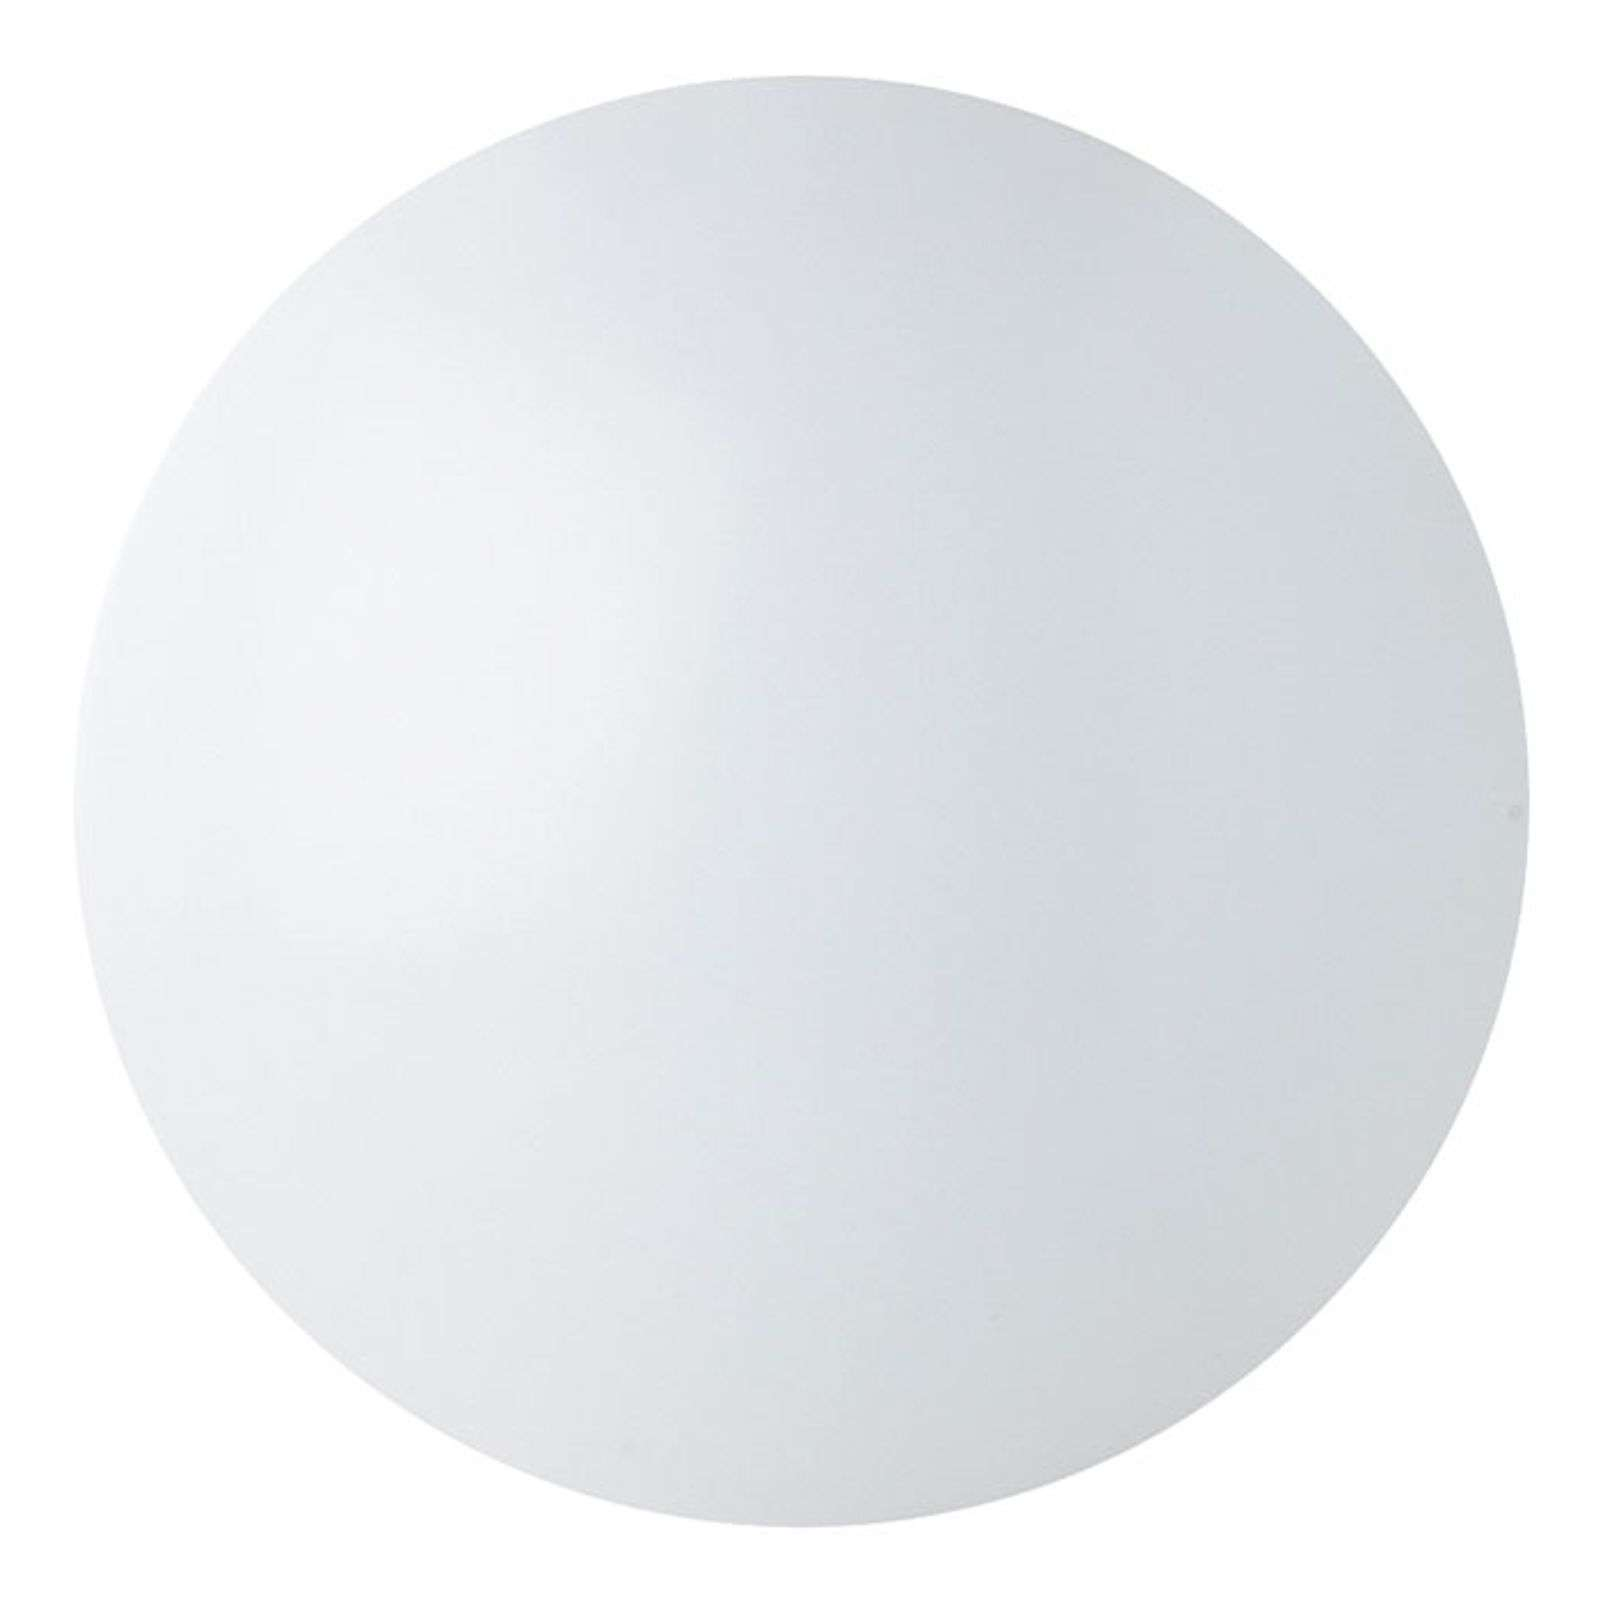 Renzo - plafonnier LED rond IP44 blanc universel